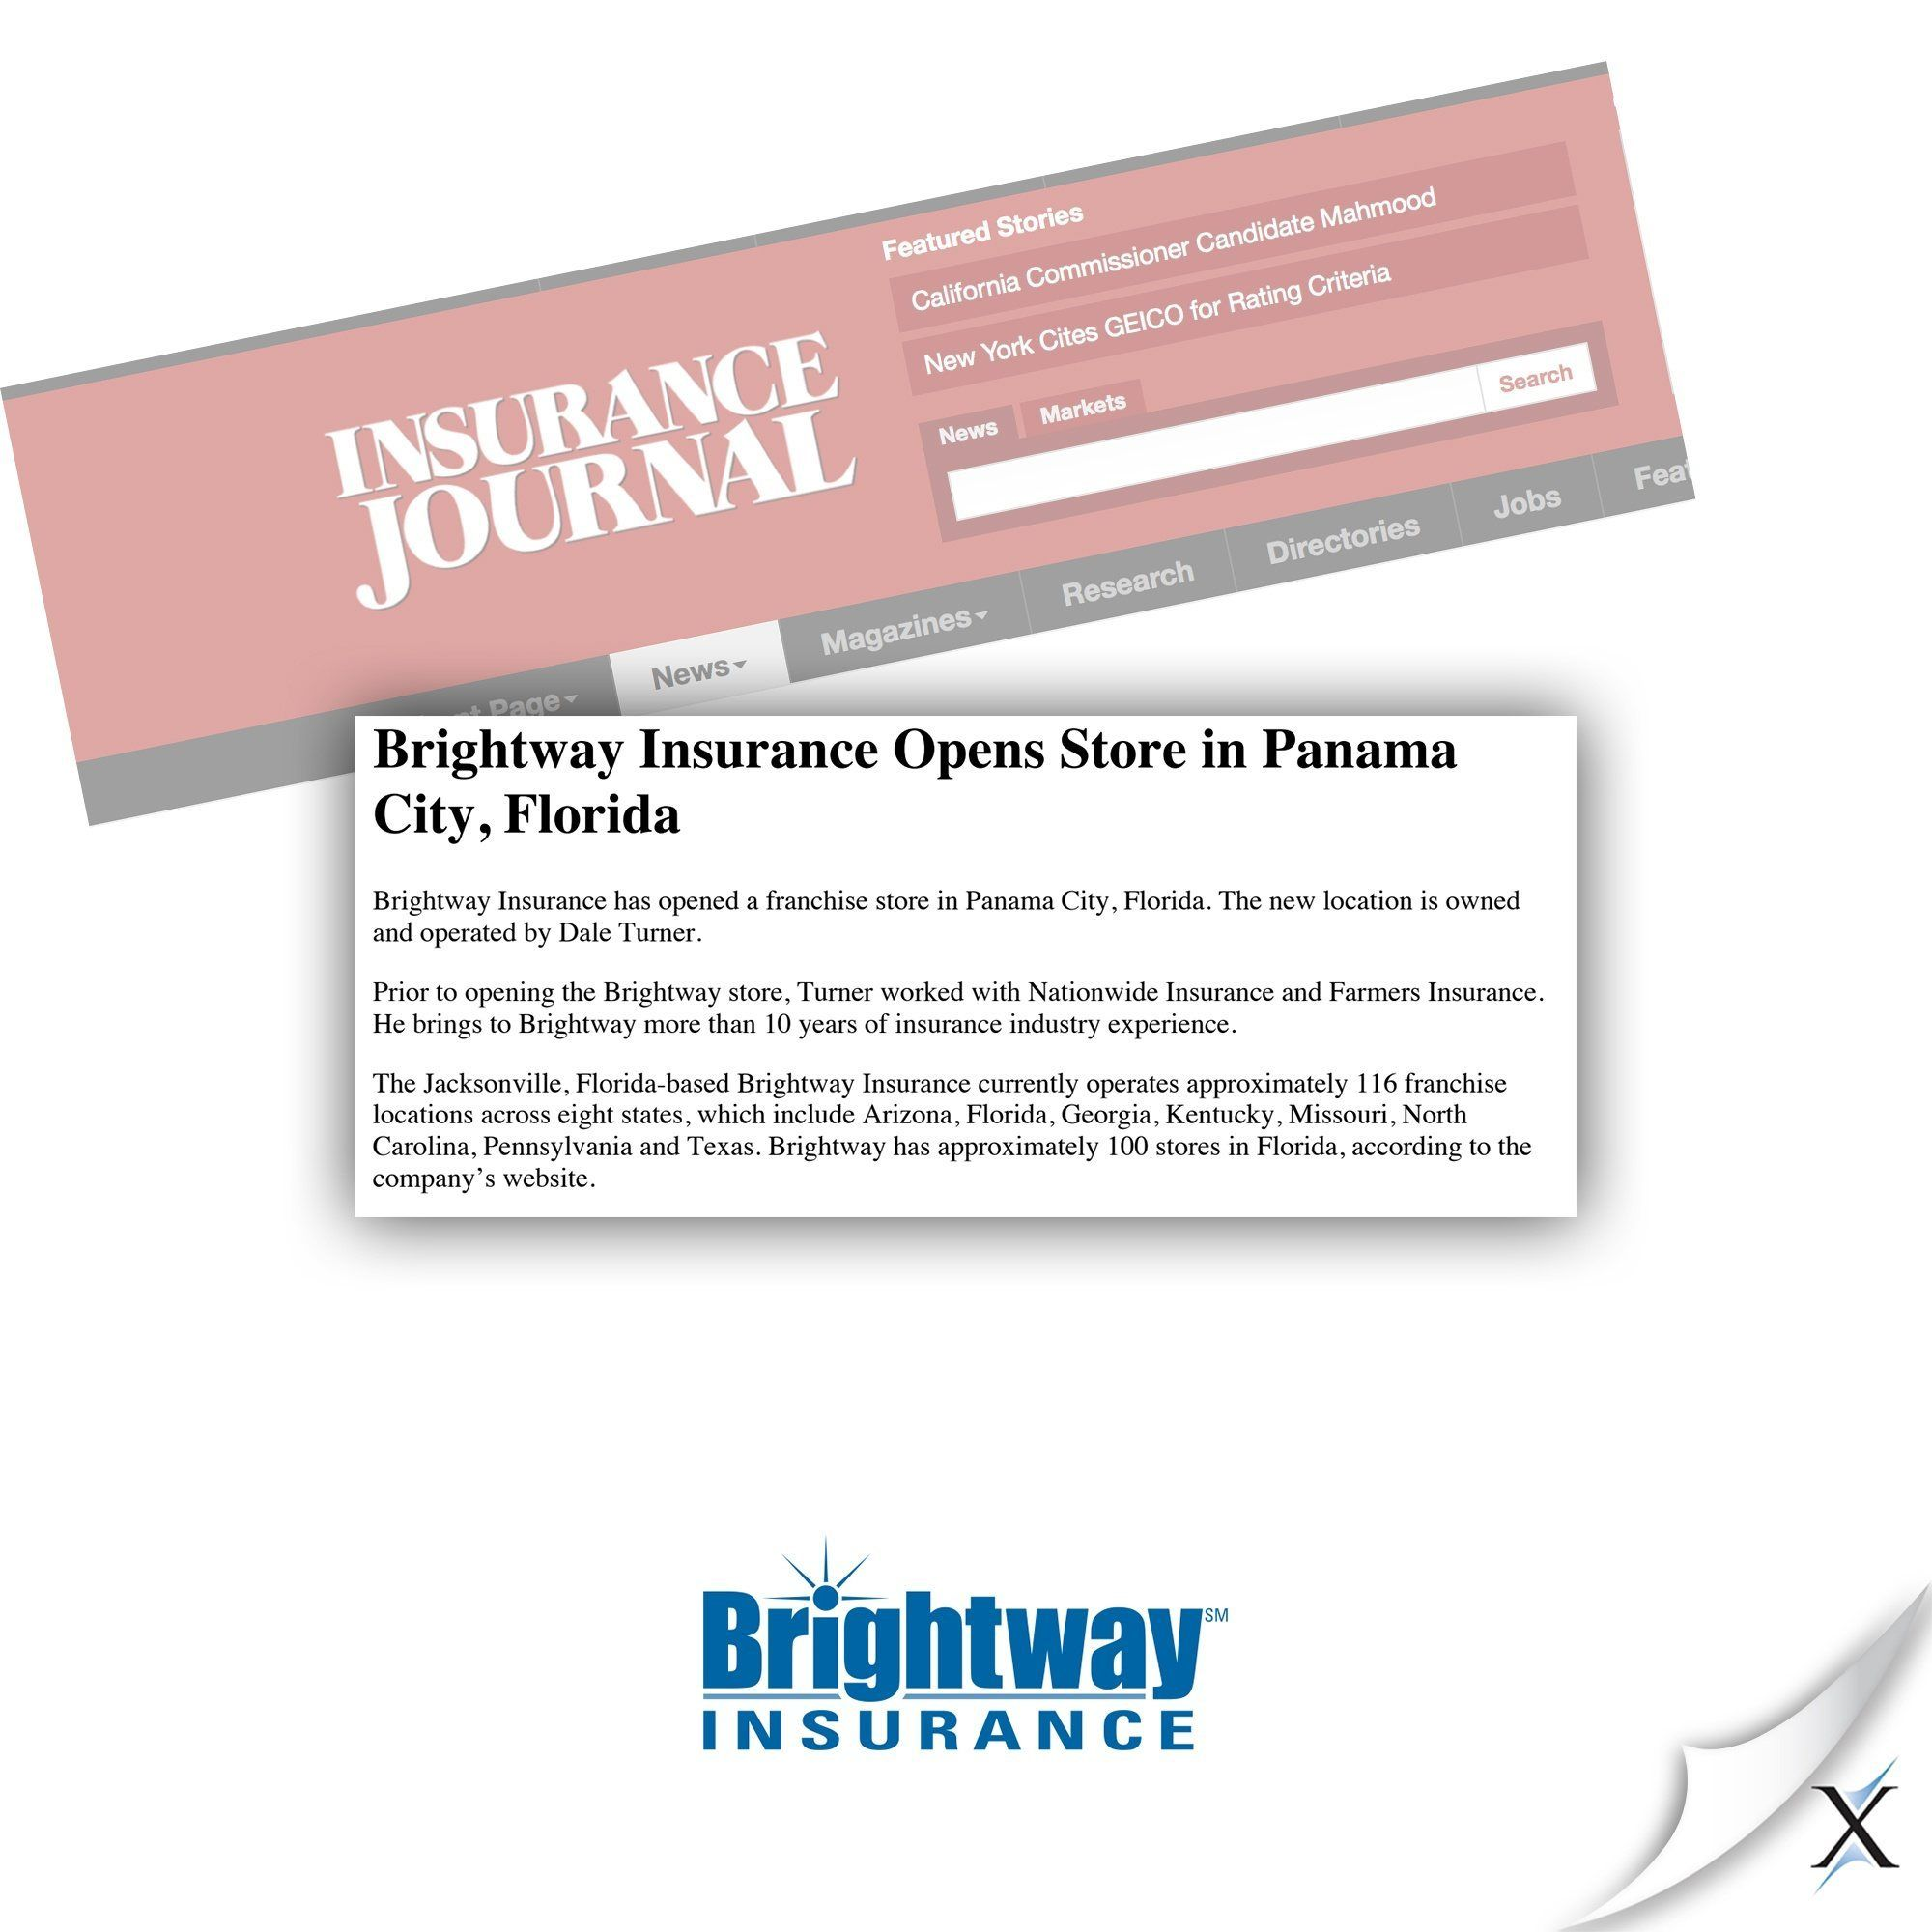 Top Five Trends In A Insurance Company To Watch A Insurance